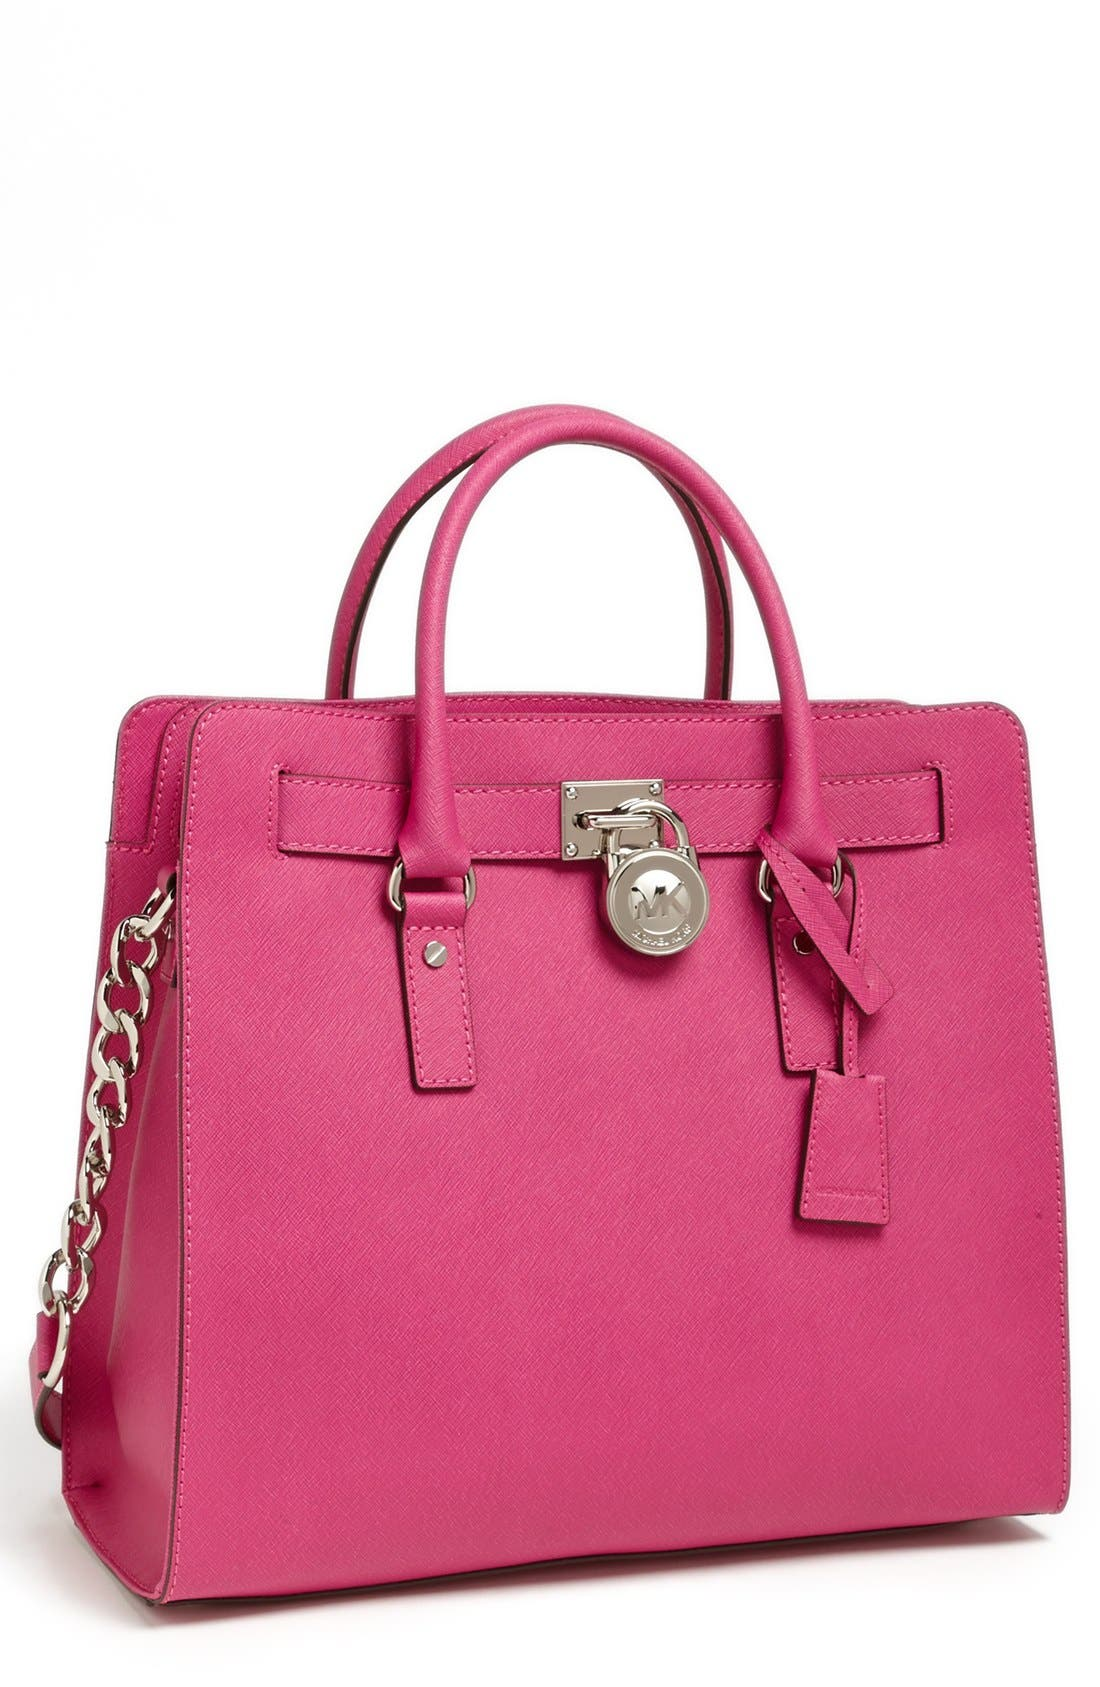 Main Image - MICHAEL Michael Kors 'Large Hamilton' Saffiano Leather Tote